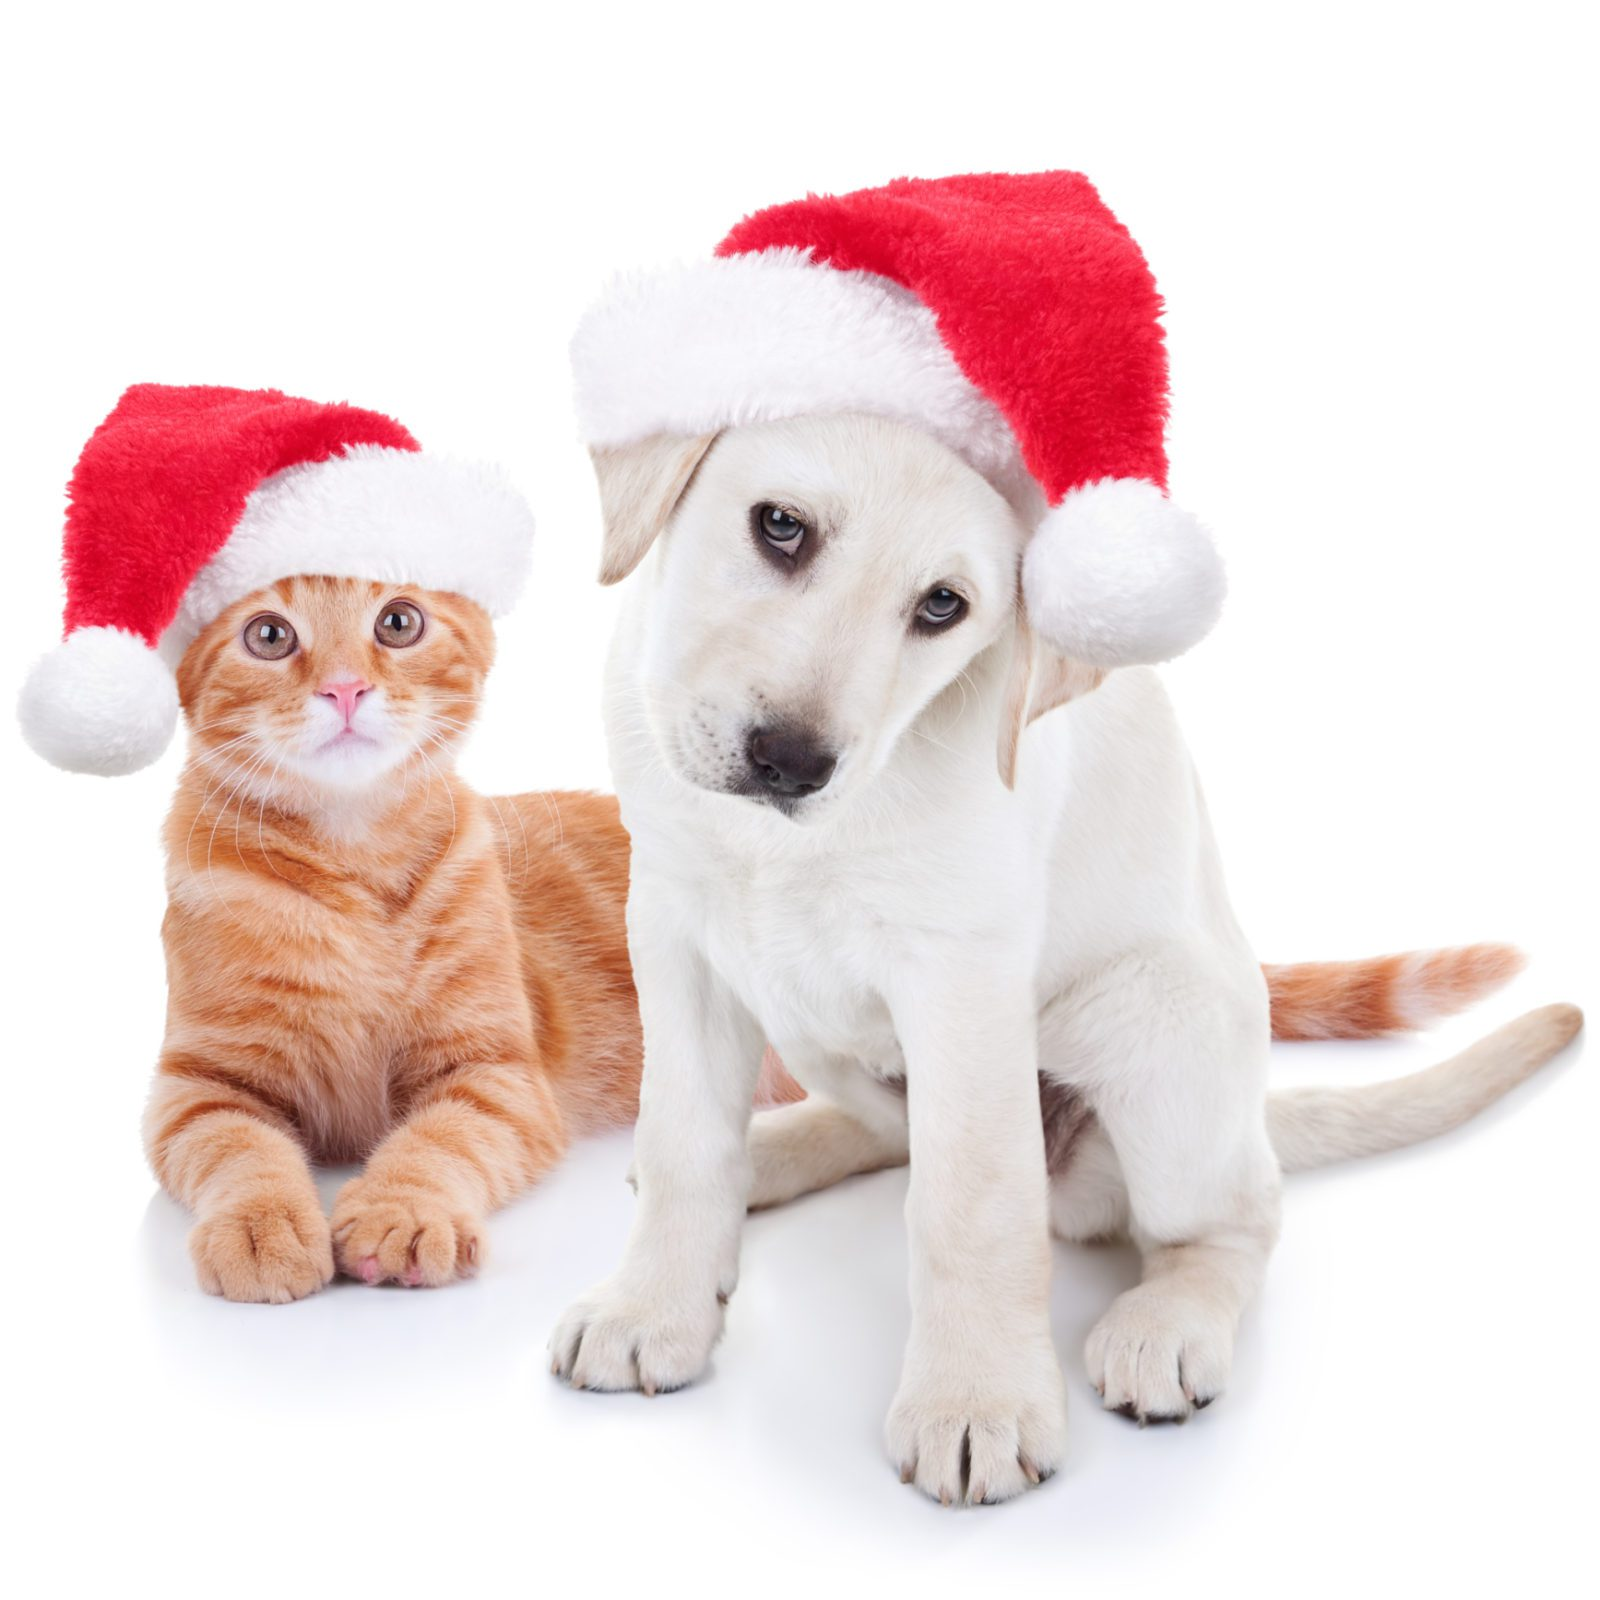 Dog and Cat with Santa Hat